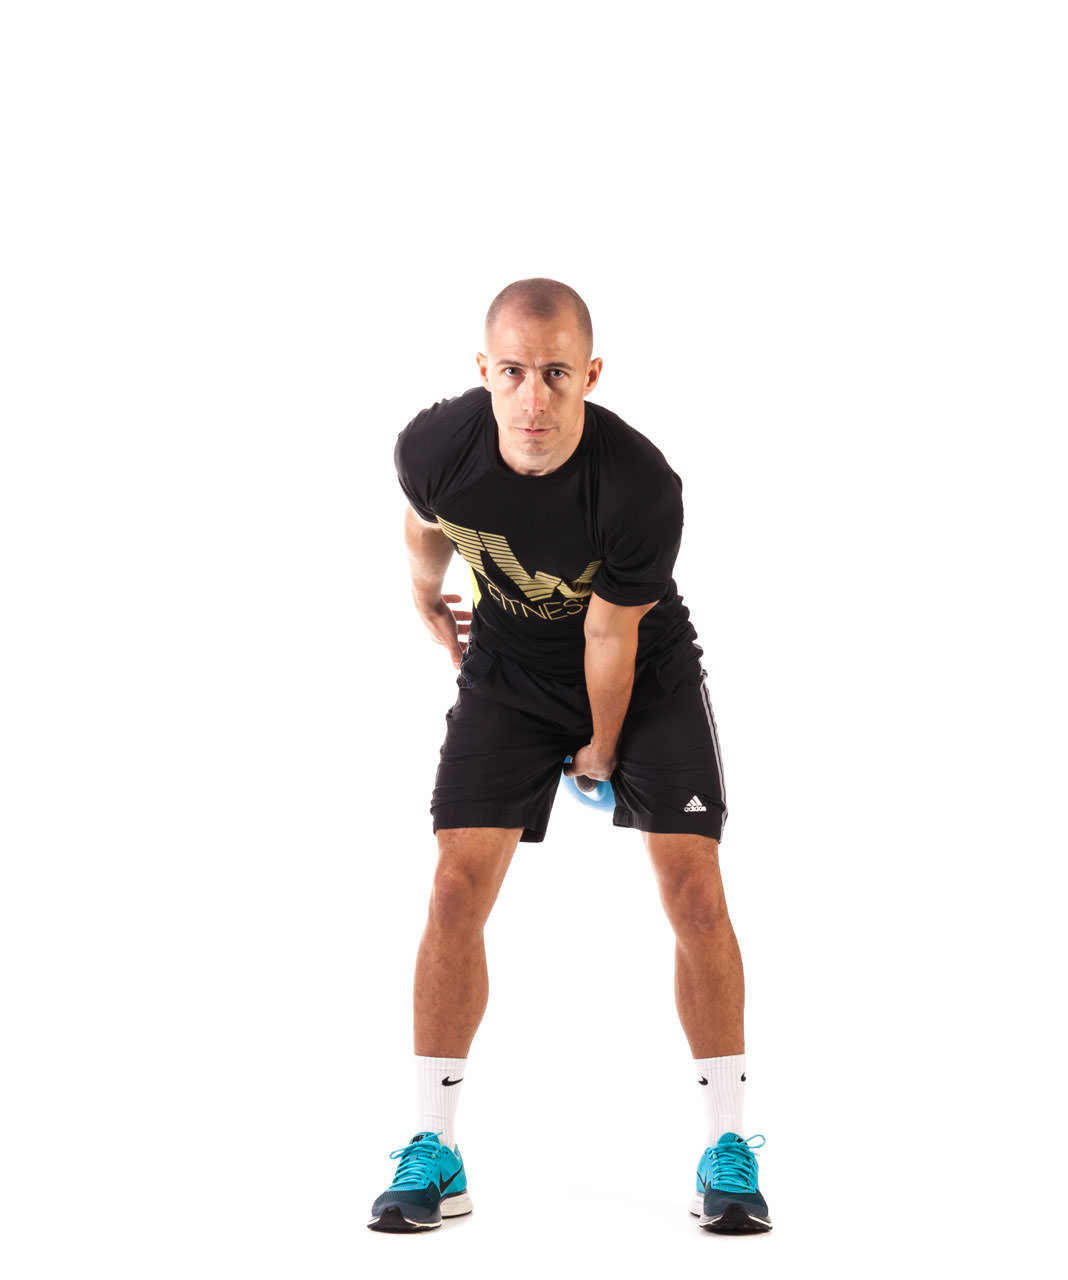 Alternating Kettlebell Swing frame #6